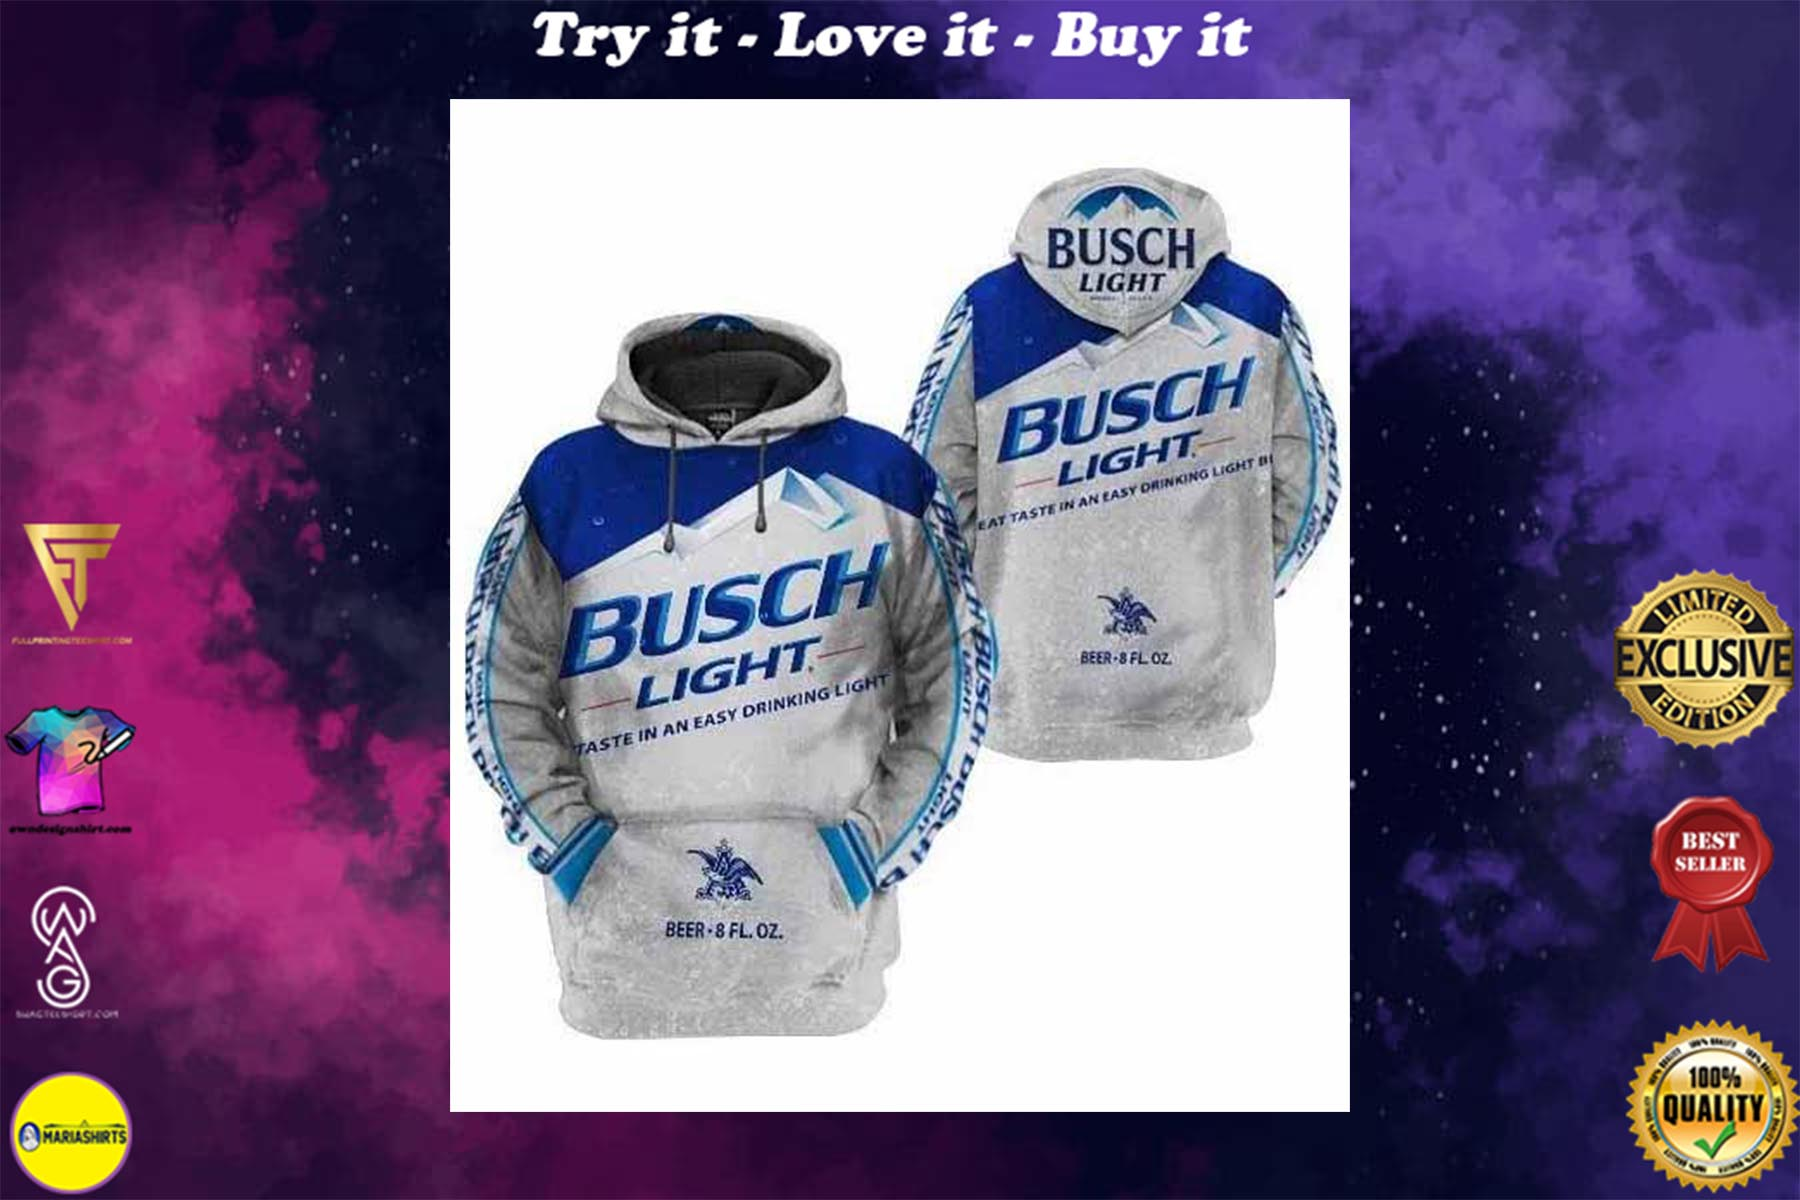 [special edition] busch light taste in an easy drinking light full printing shirt - maria